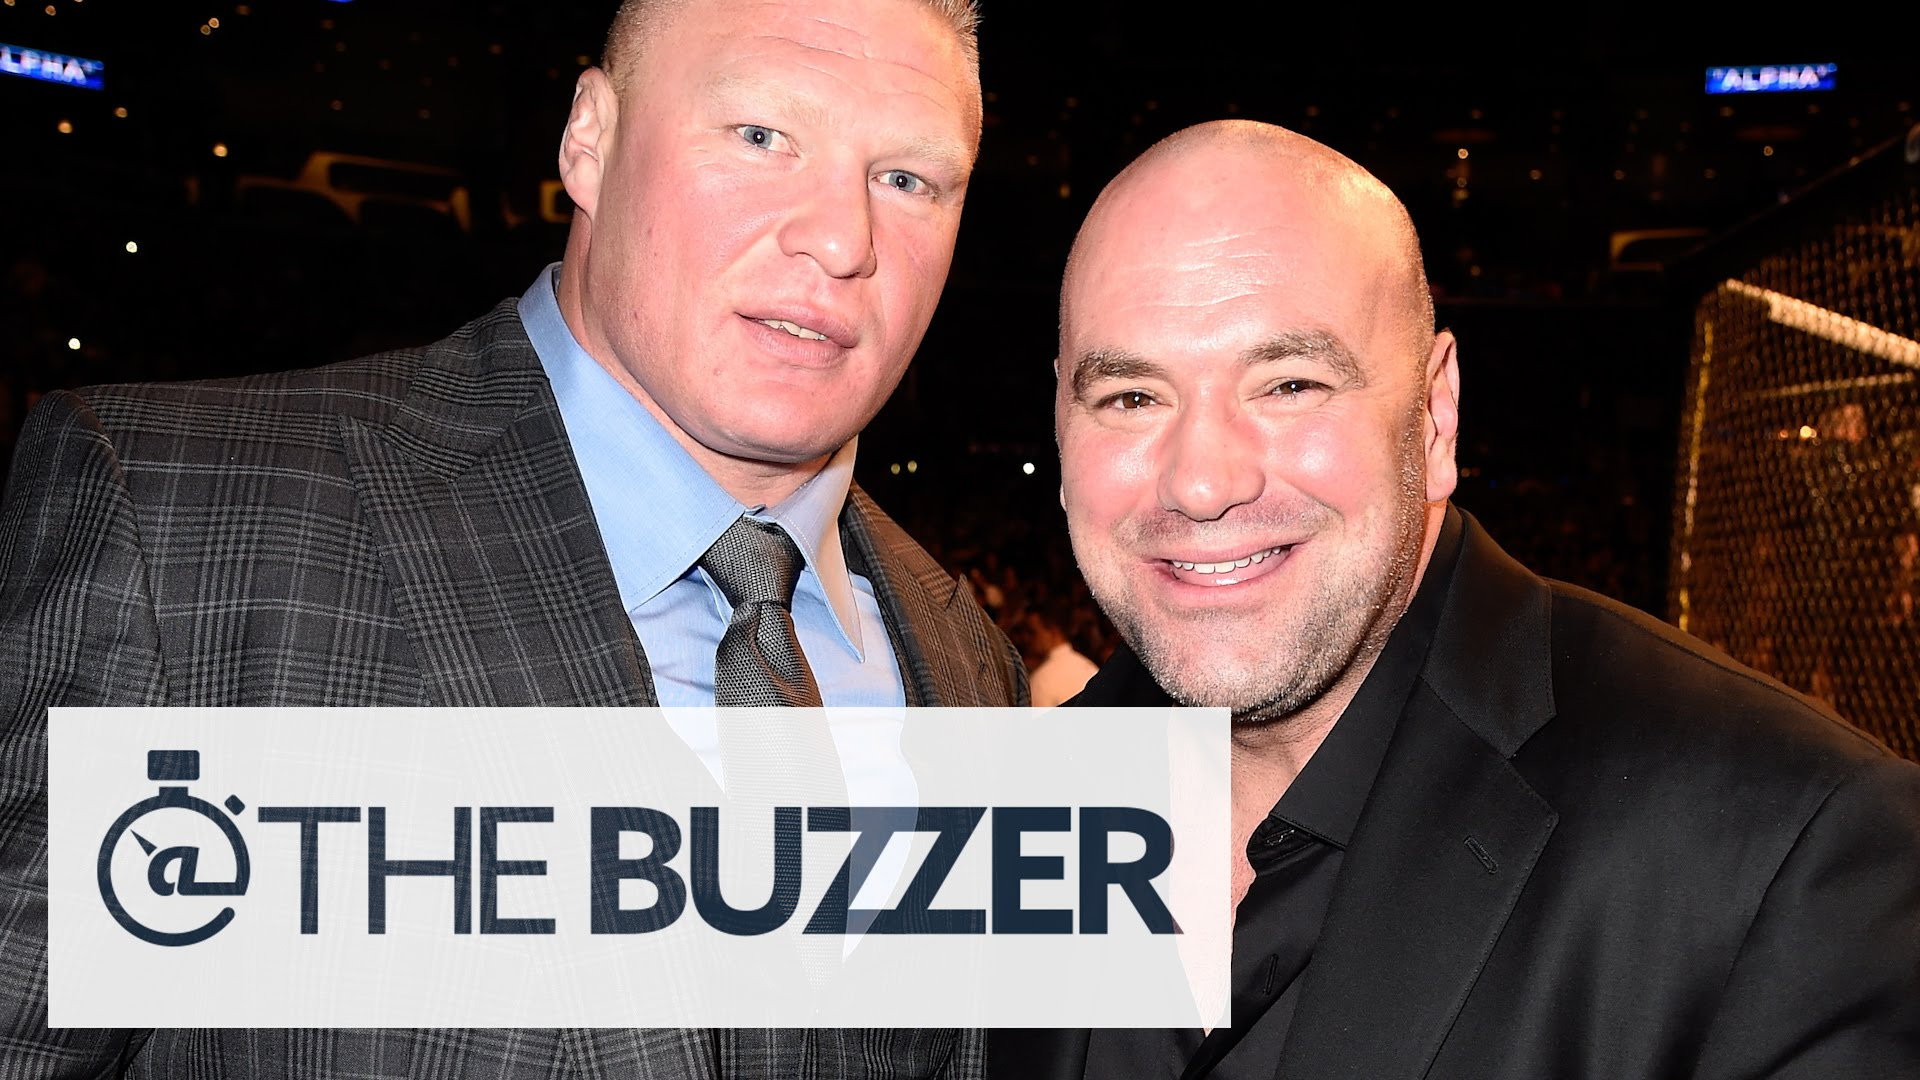 Dana White's reaction to Brock Lesnar's decision to re-sign with WWE